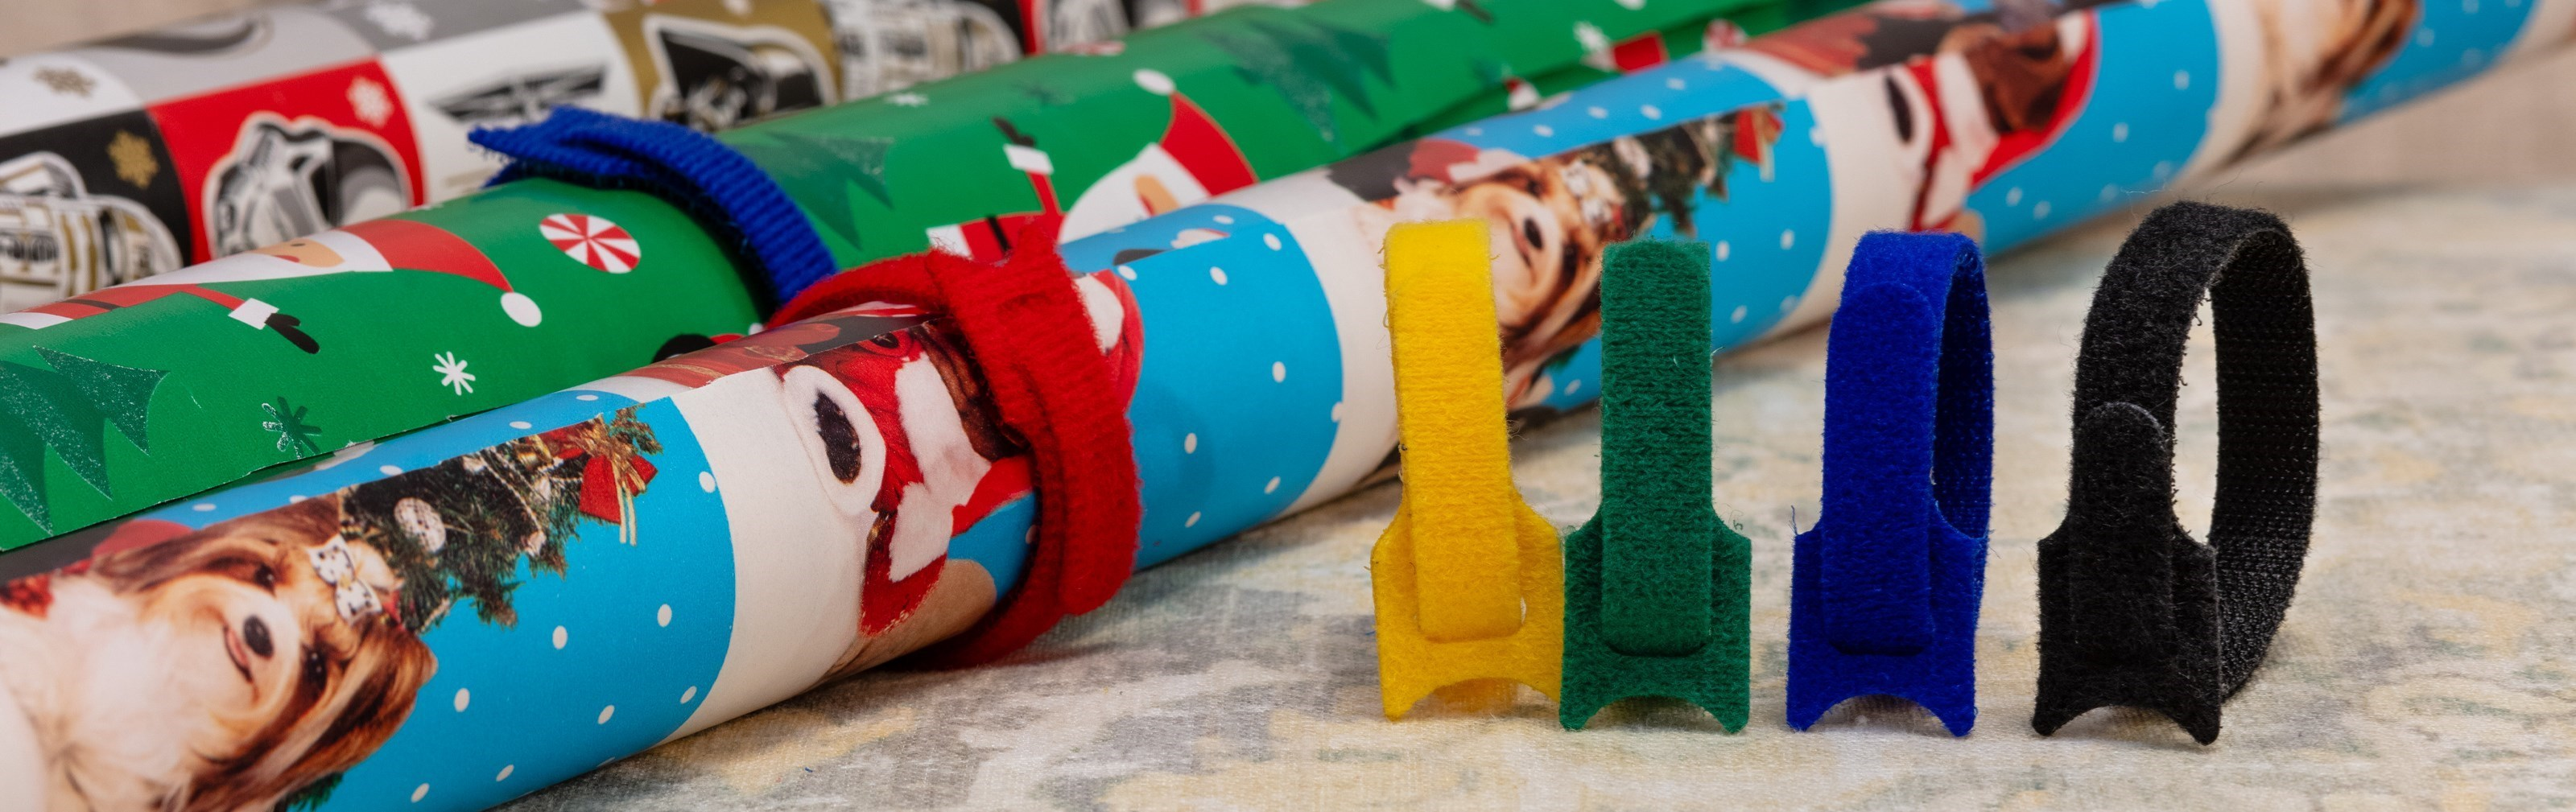 Picture for category Organize Your Wrapping Paper With Hook and Loop Tie Wraps